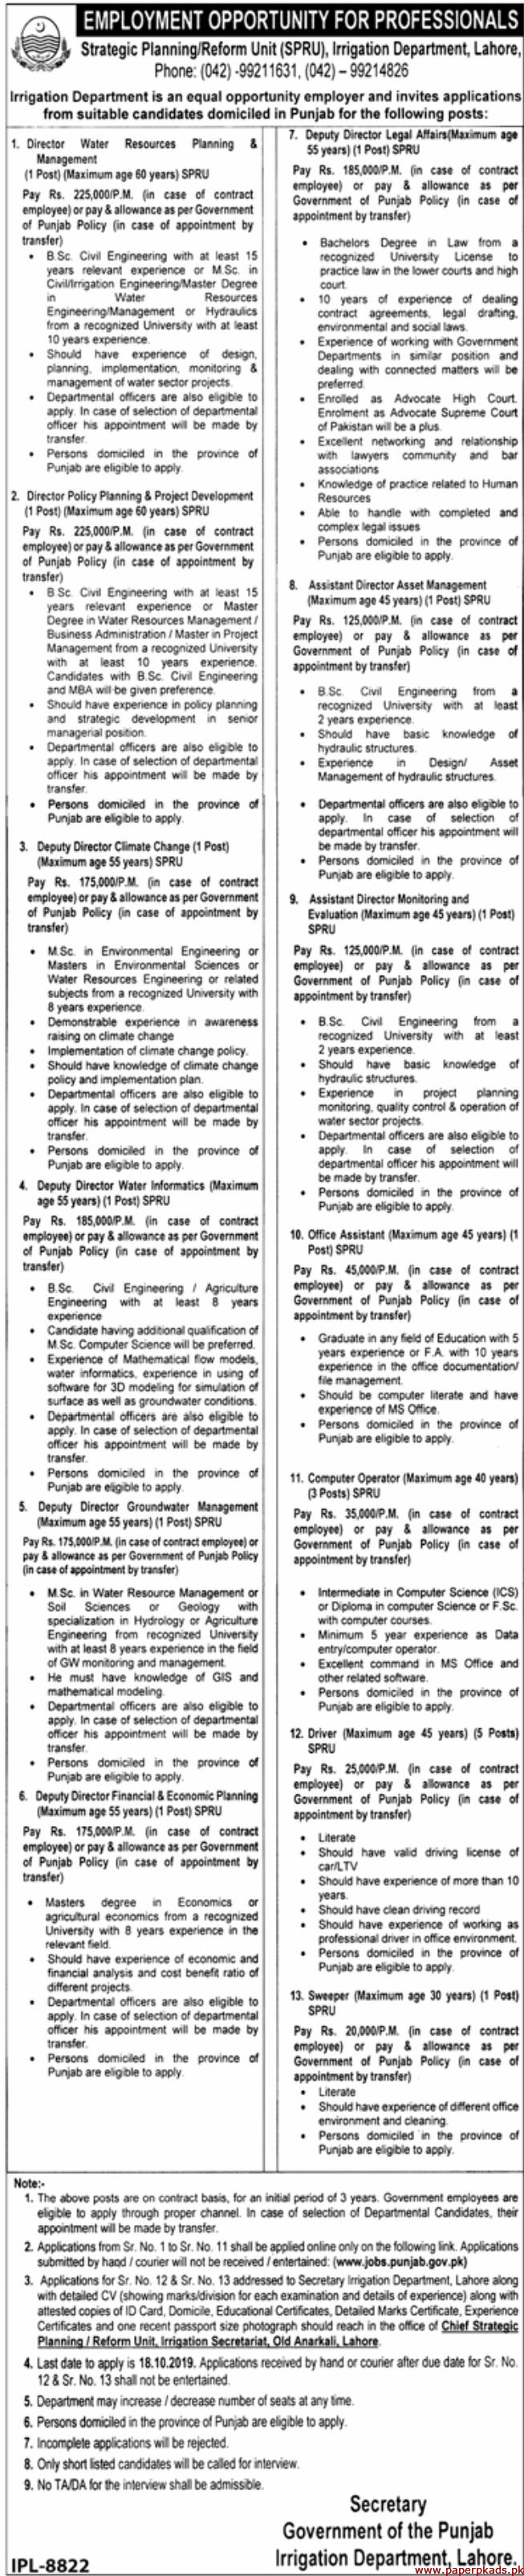 Irrigation Department Government of the Punjab Jobs 2019 Latest